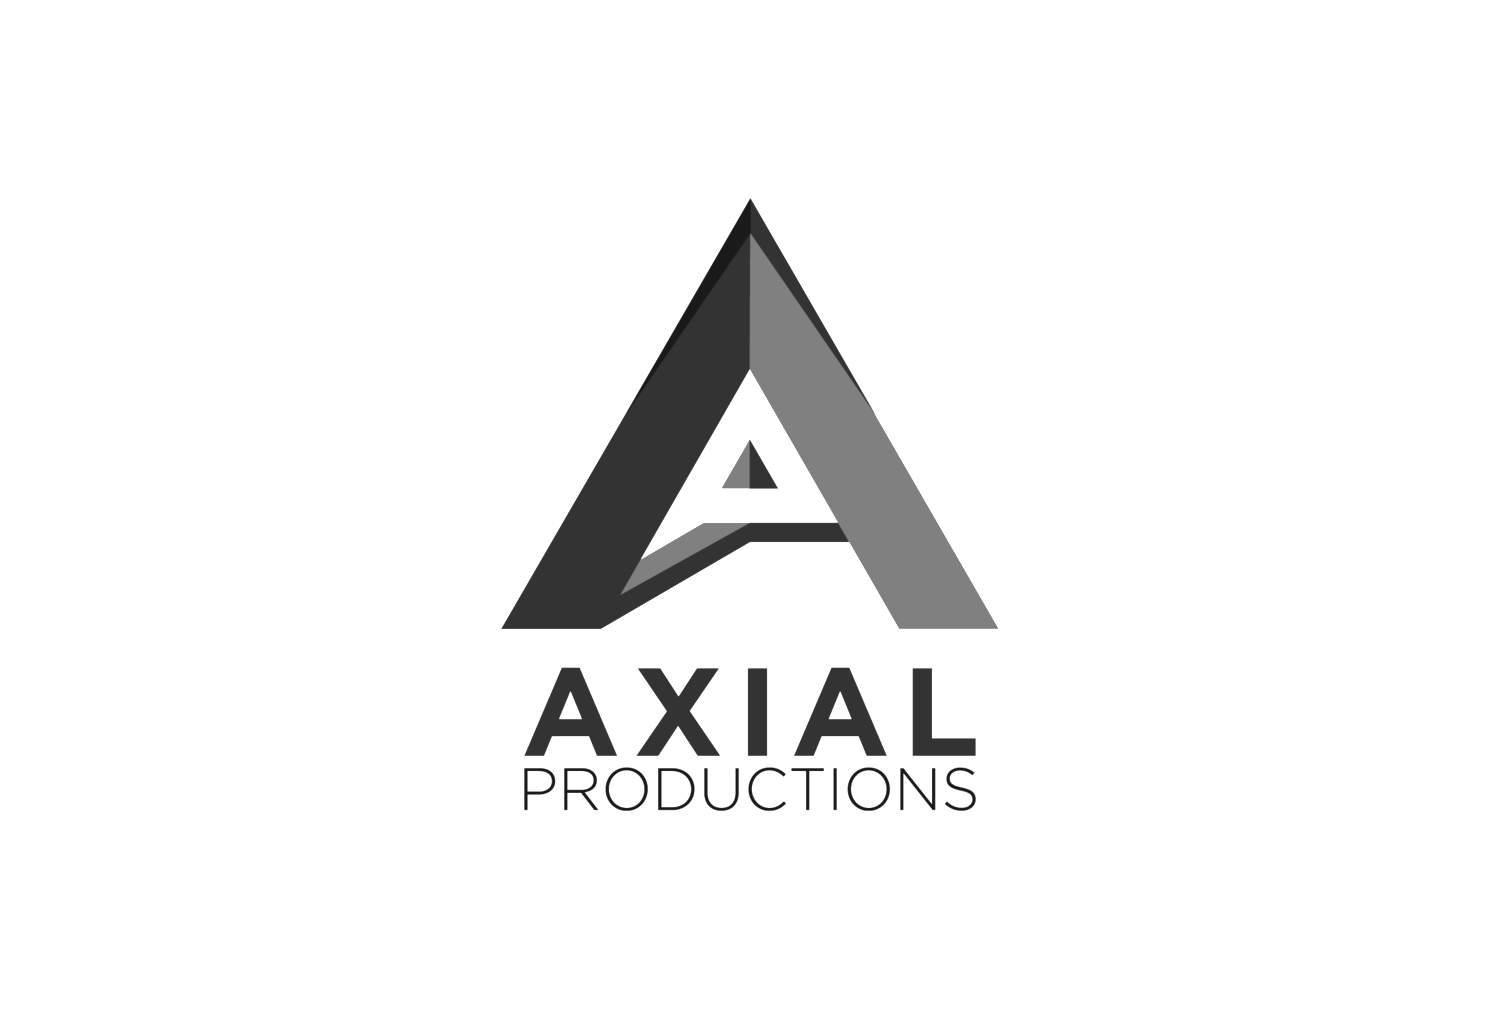 Axial Productions